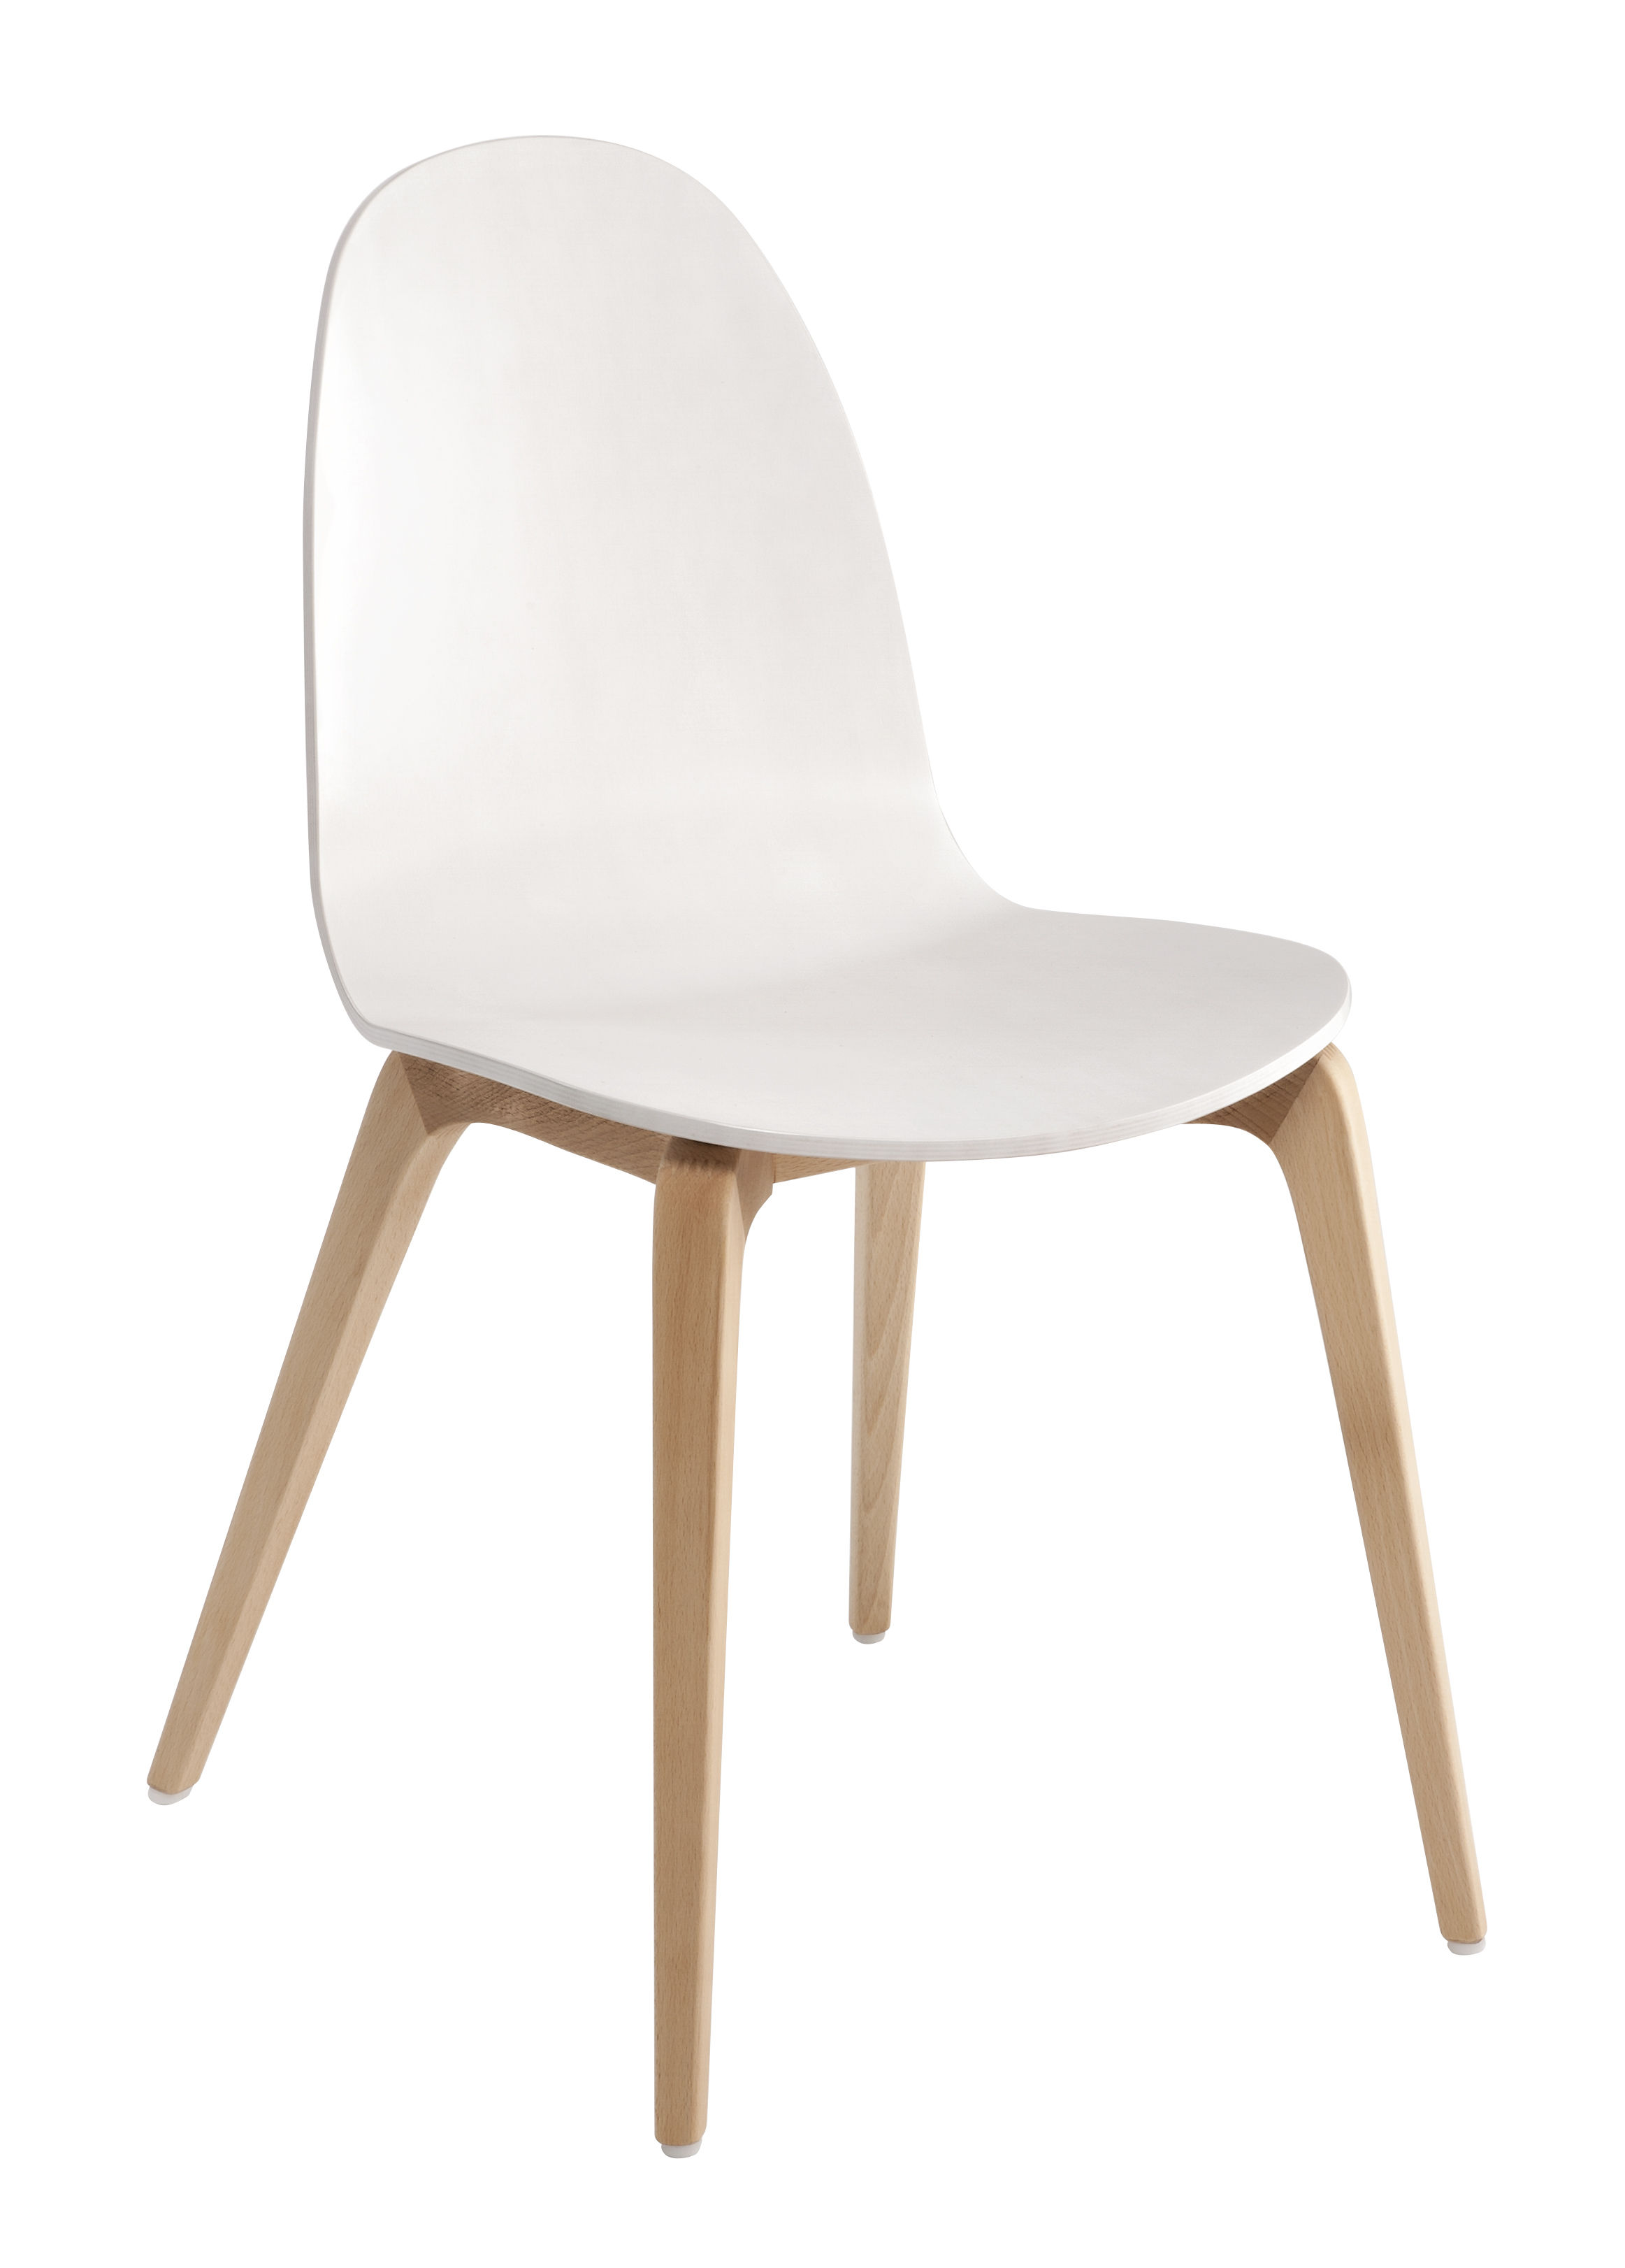 Chaise bob ondarreta blanc bois naturel made in design - Ikea chaise bois ...